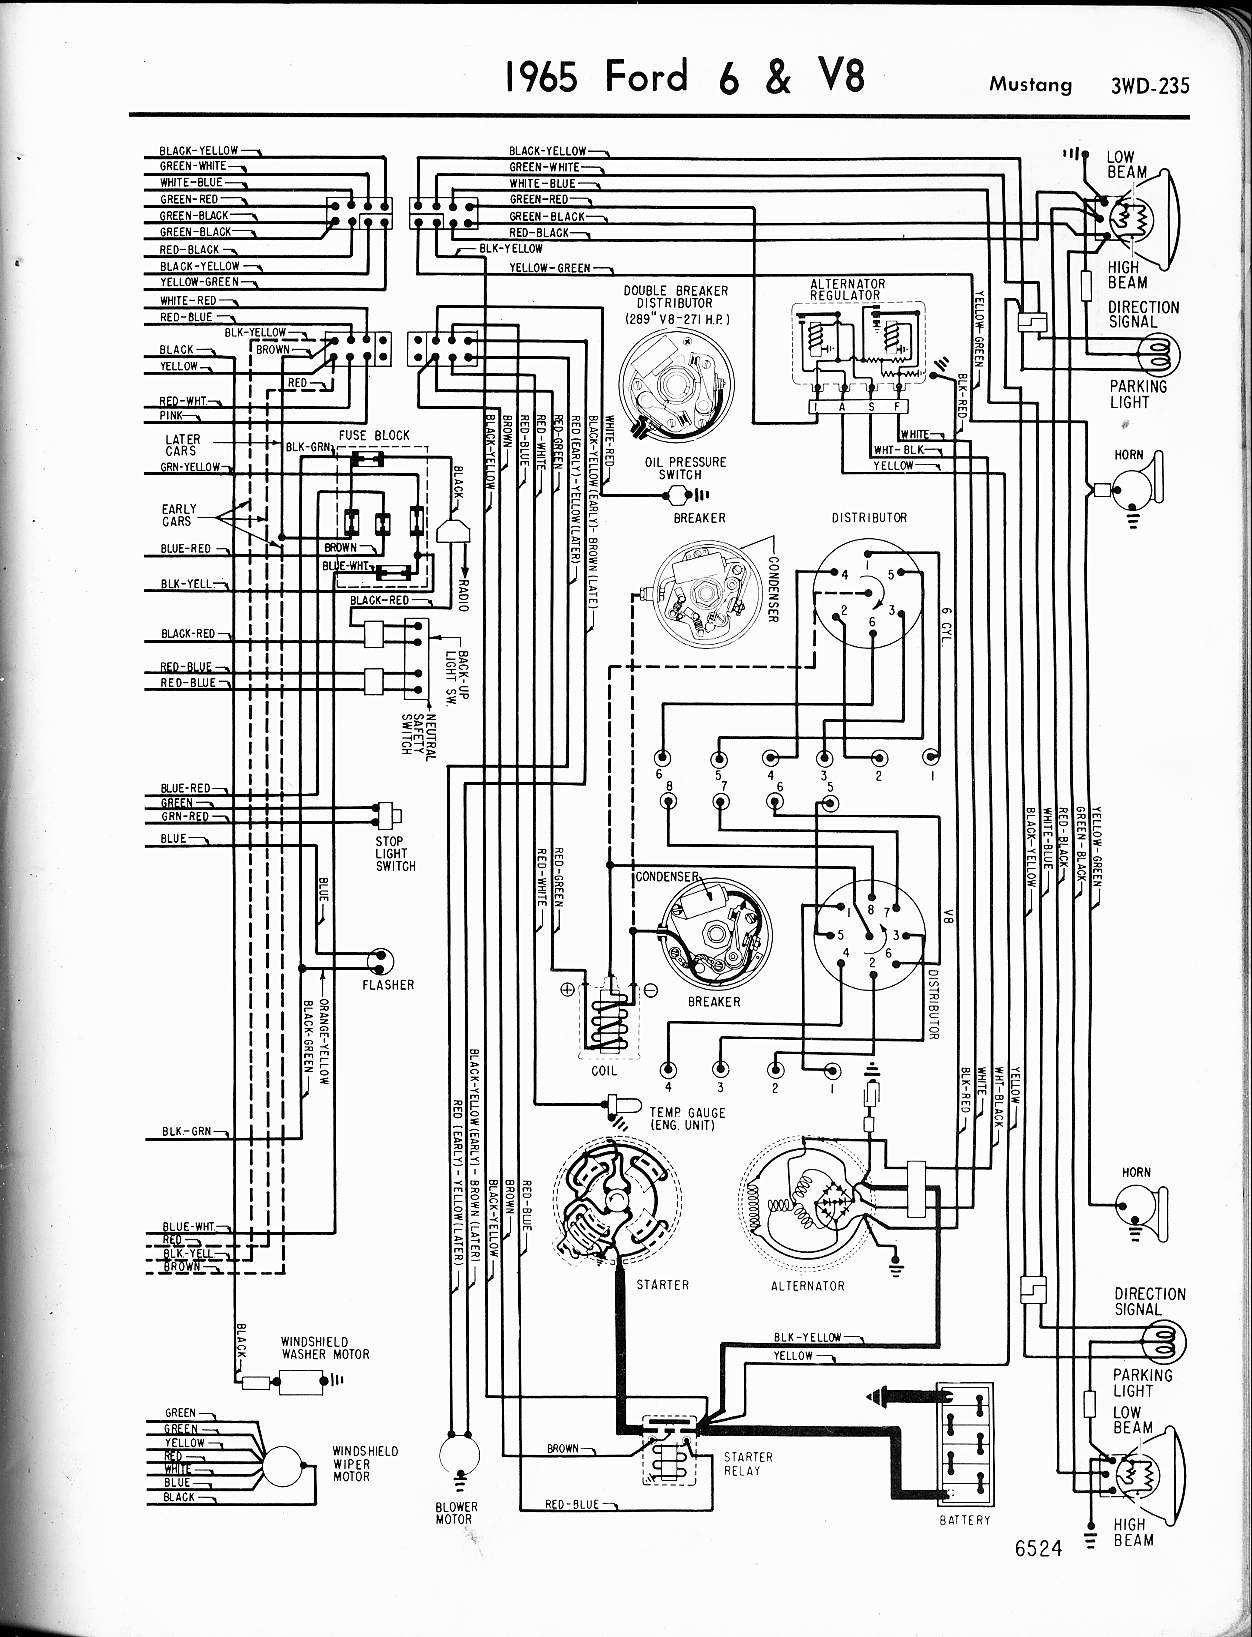 1969 F150 Wiring Diagram Library 1968 Ford F 250 Turn Signal 65 Mustang 2 Drawing B